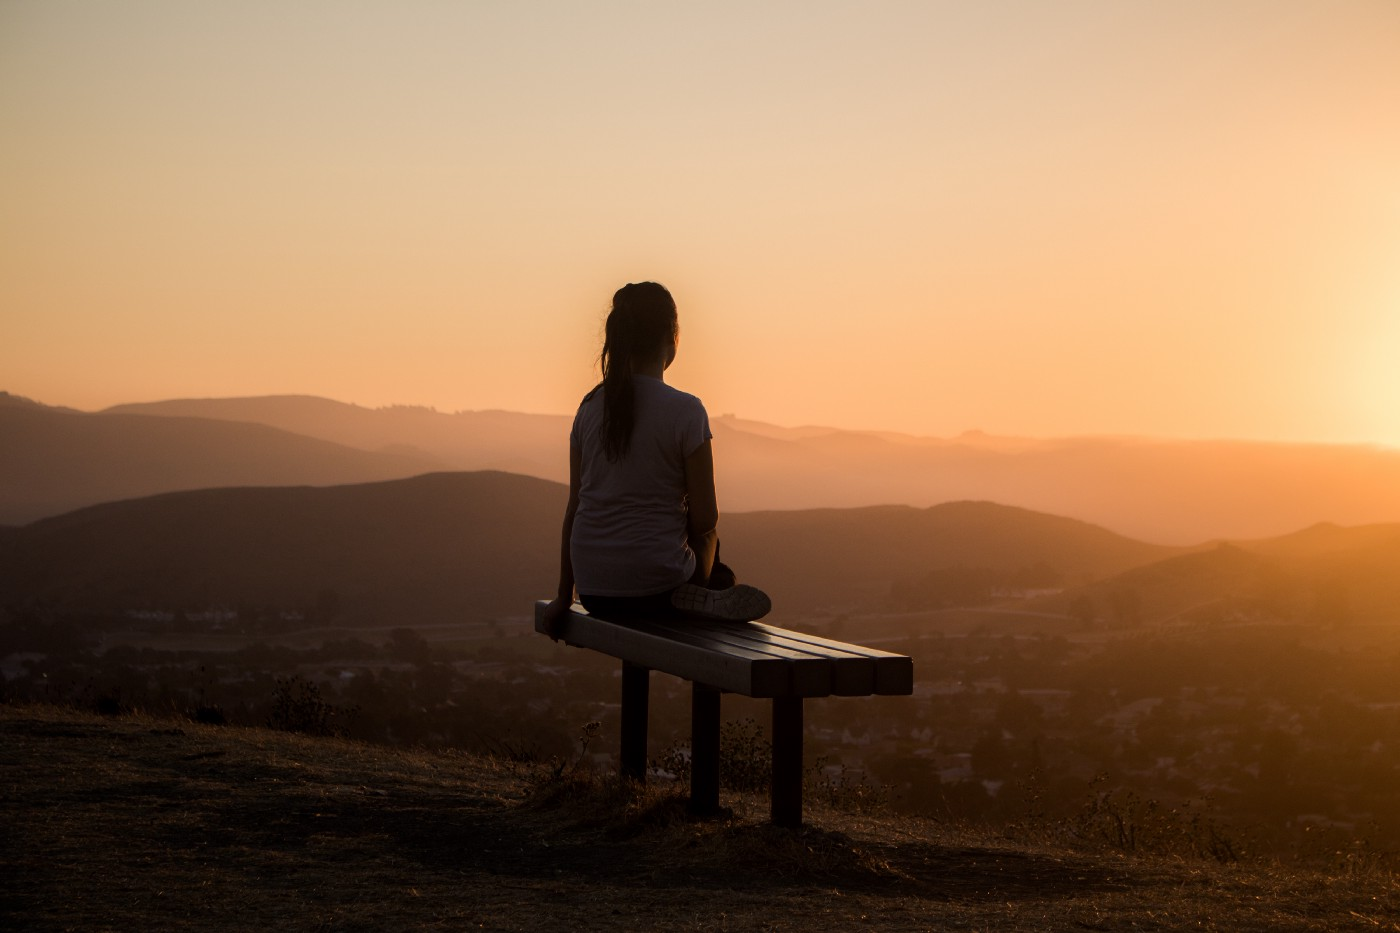 A picture of a young woman sitting on a bench and looking into the sunset in a beautiful mountainous area.